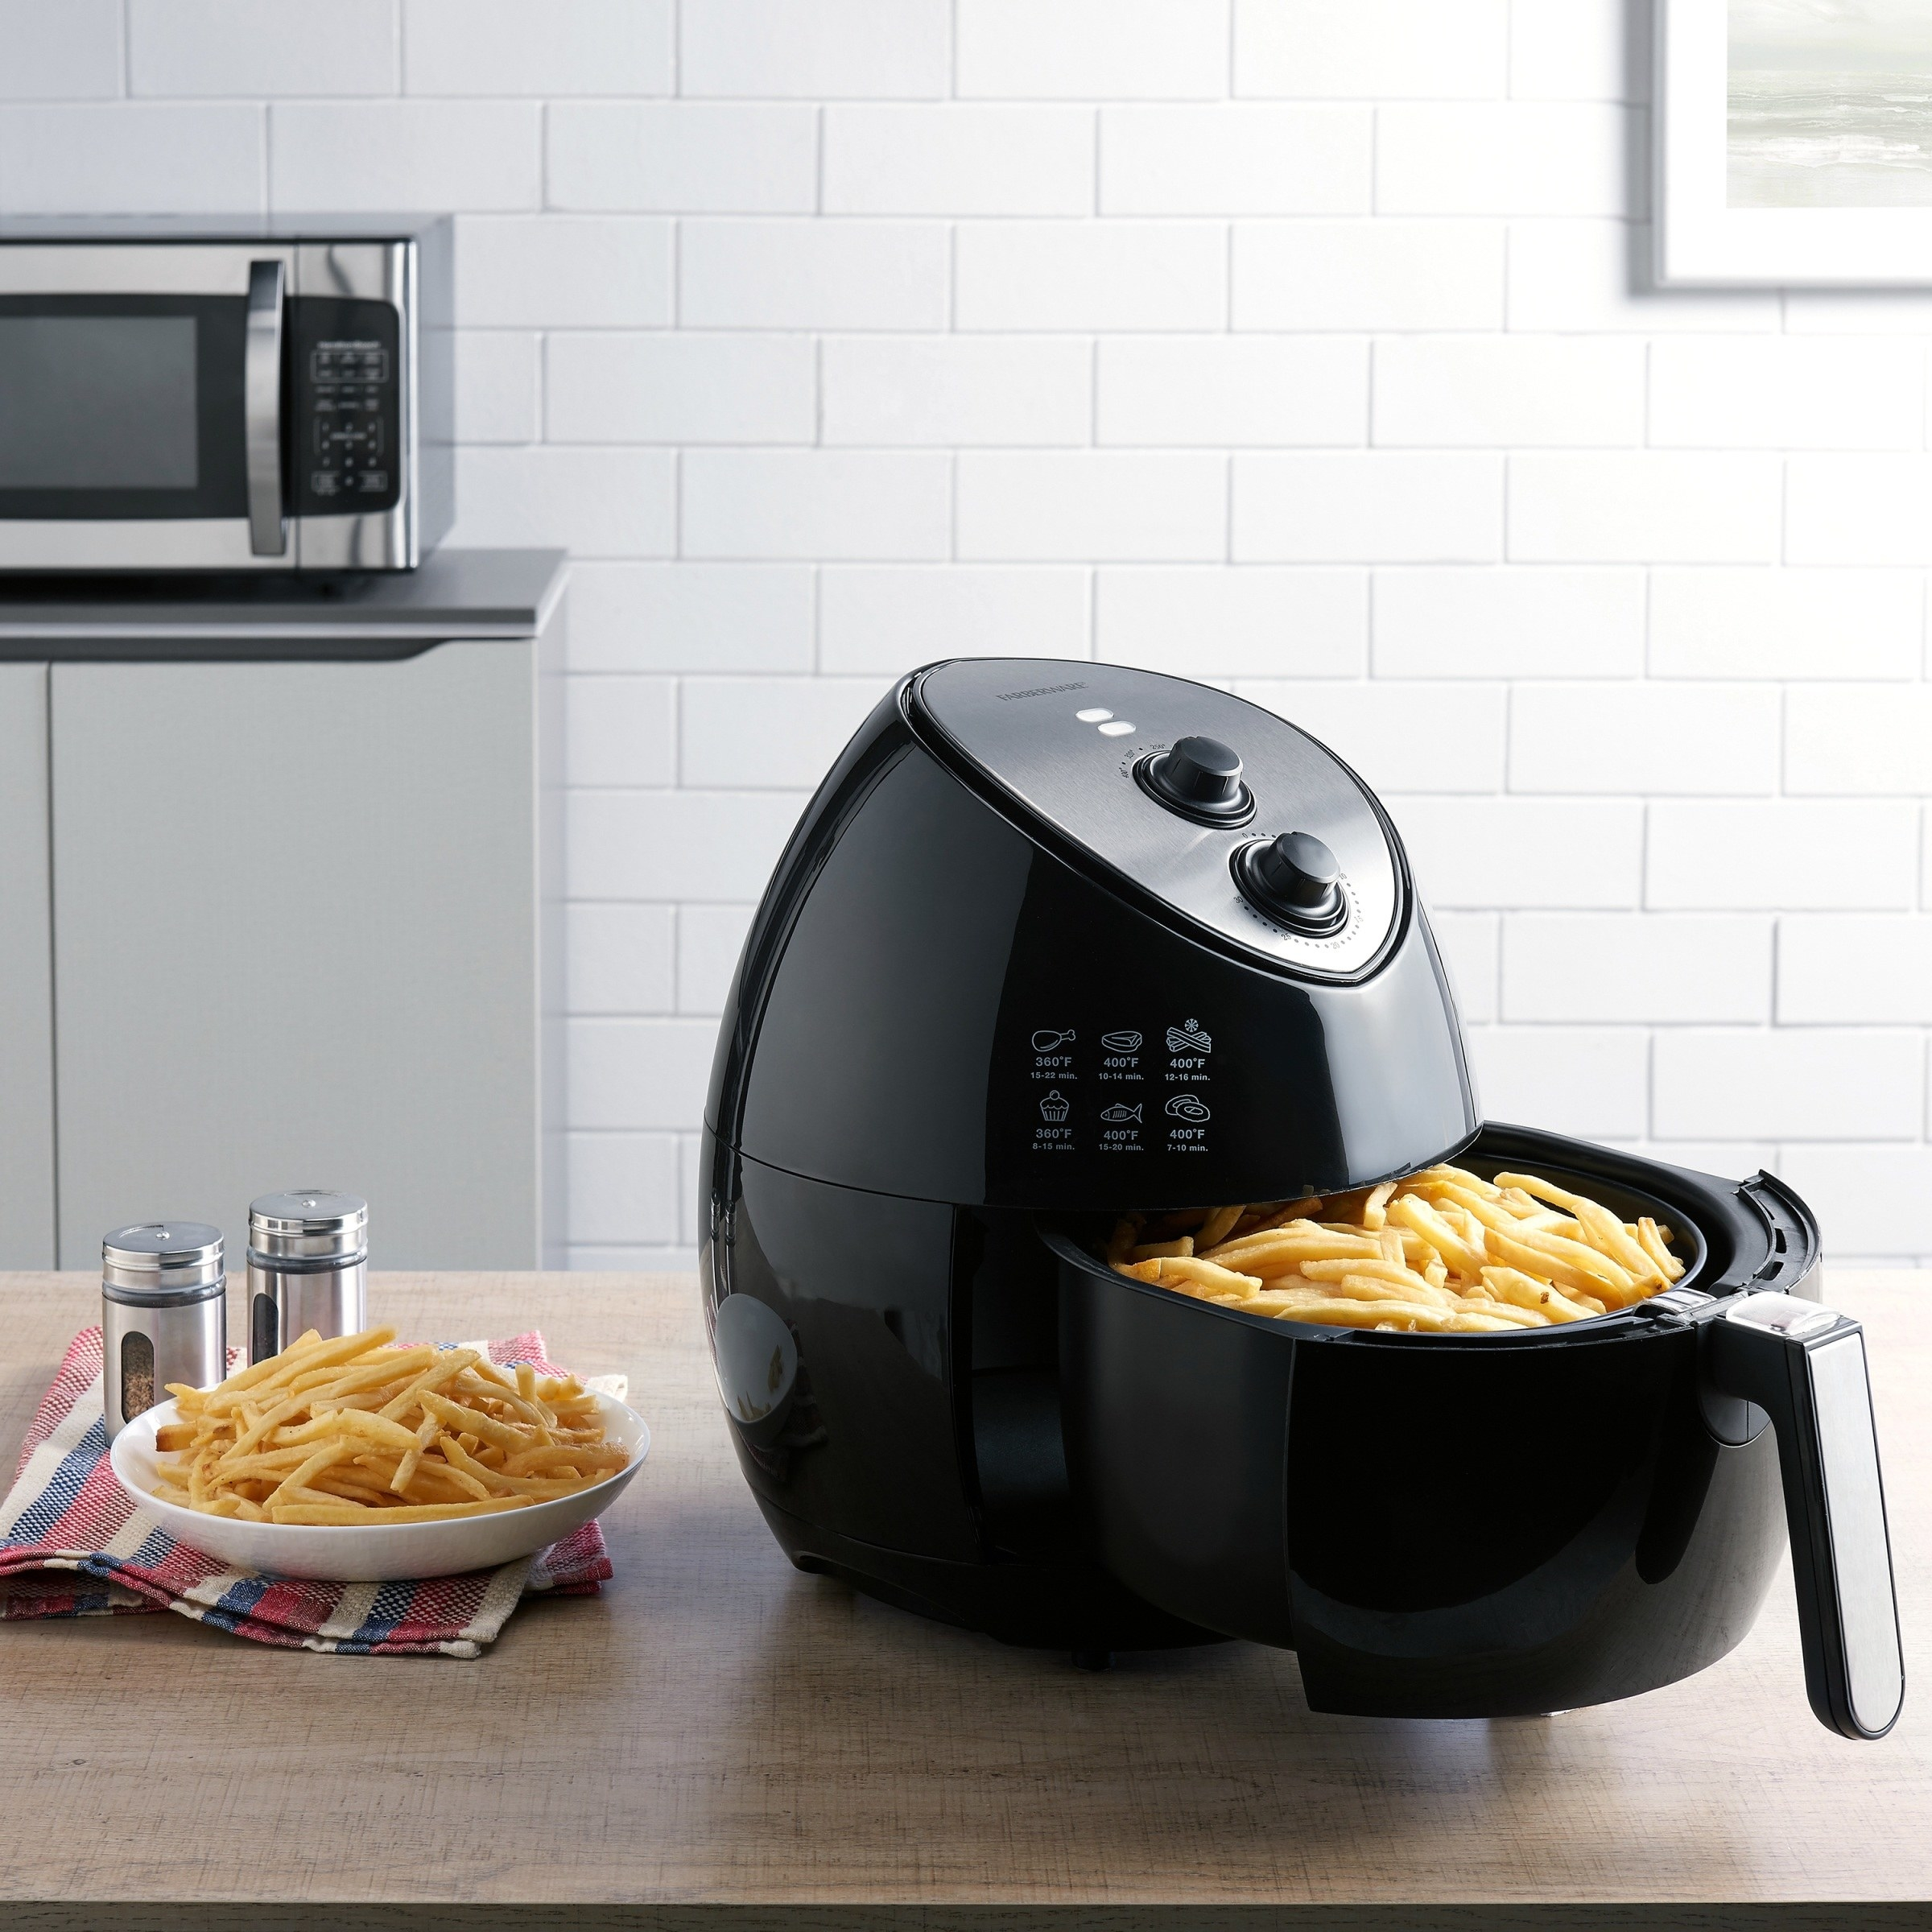 black farberware air fryer with fries in the cook basket